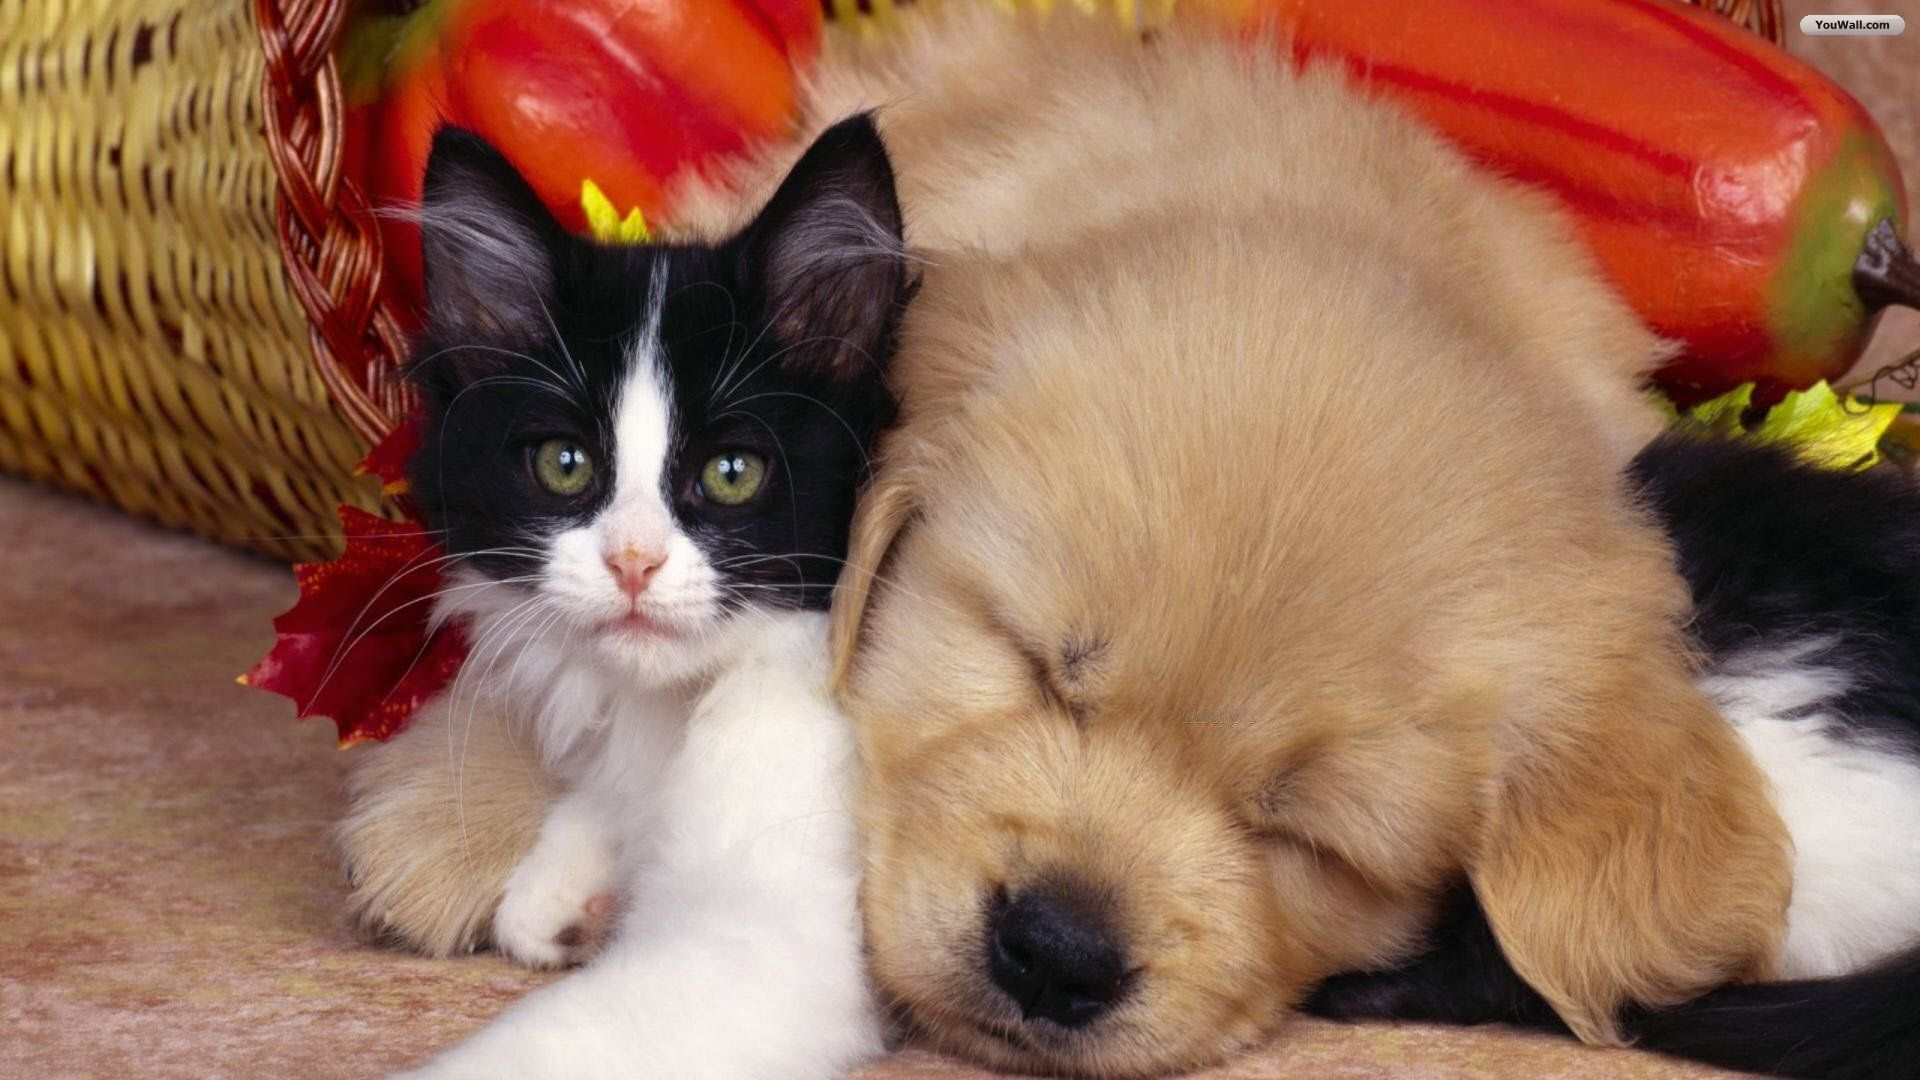 21 Puppy And Kitten Wallpapers Wallpaperboat